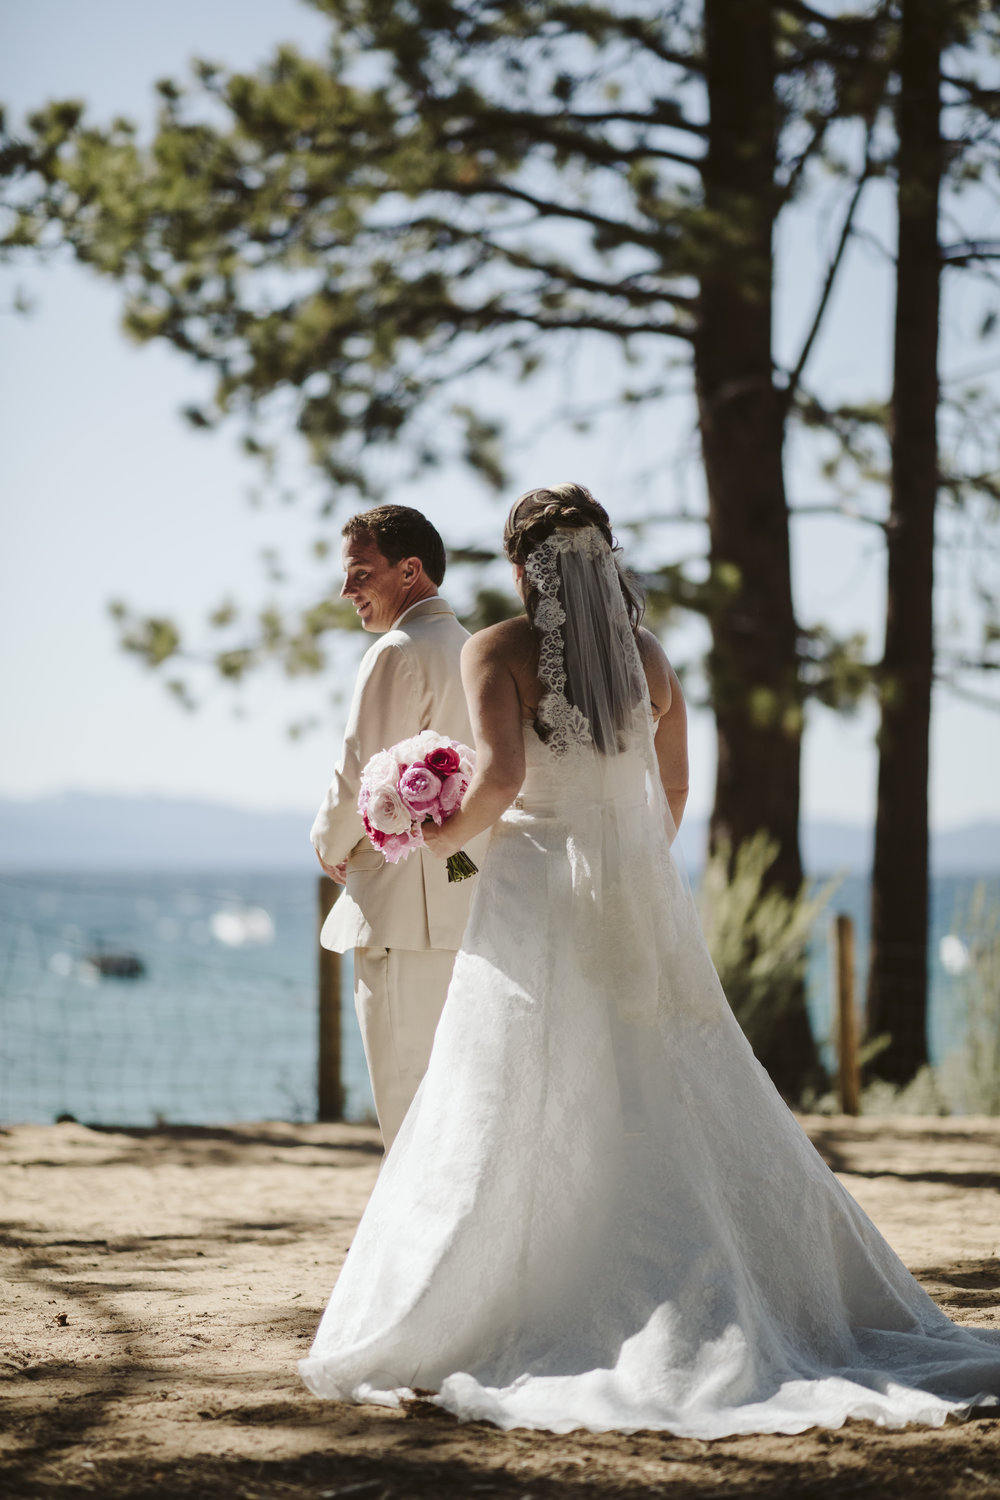 _P8A2217vildphotography-adventurewedding-tahoe-laketahoewedding-laketahoeweddingphotographer-tahoewedding-jamie-ed.jpg